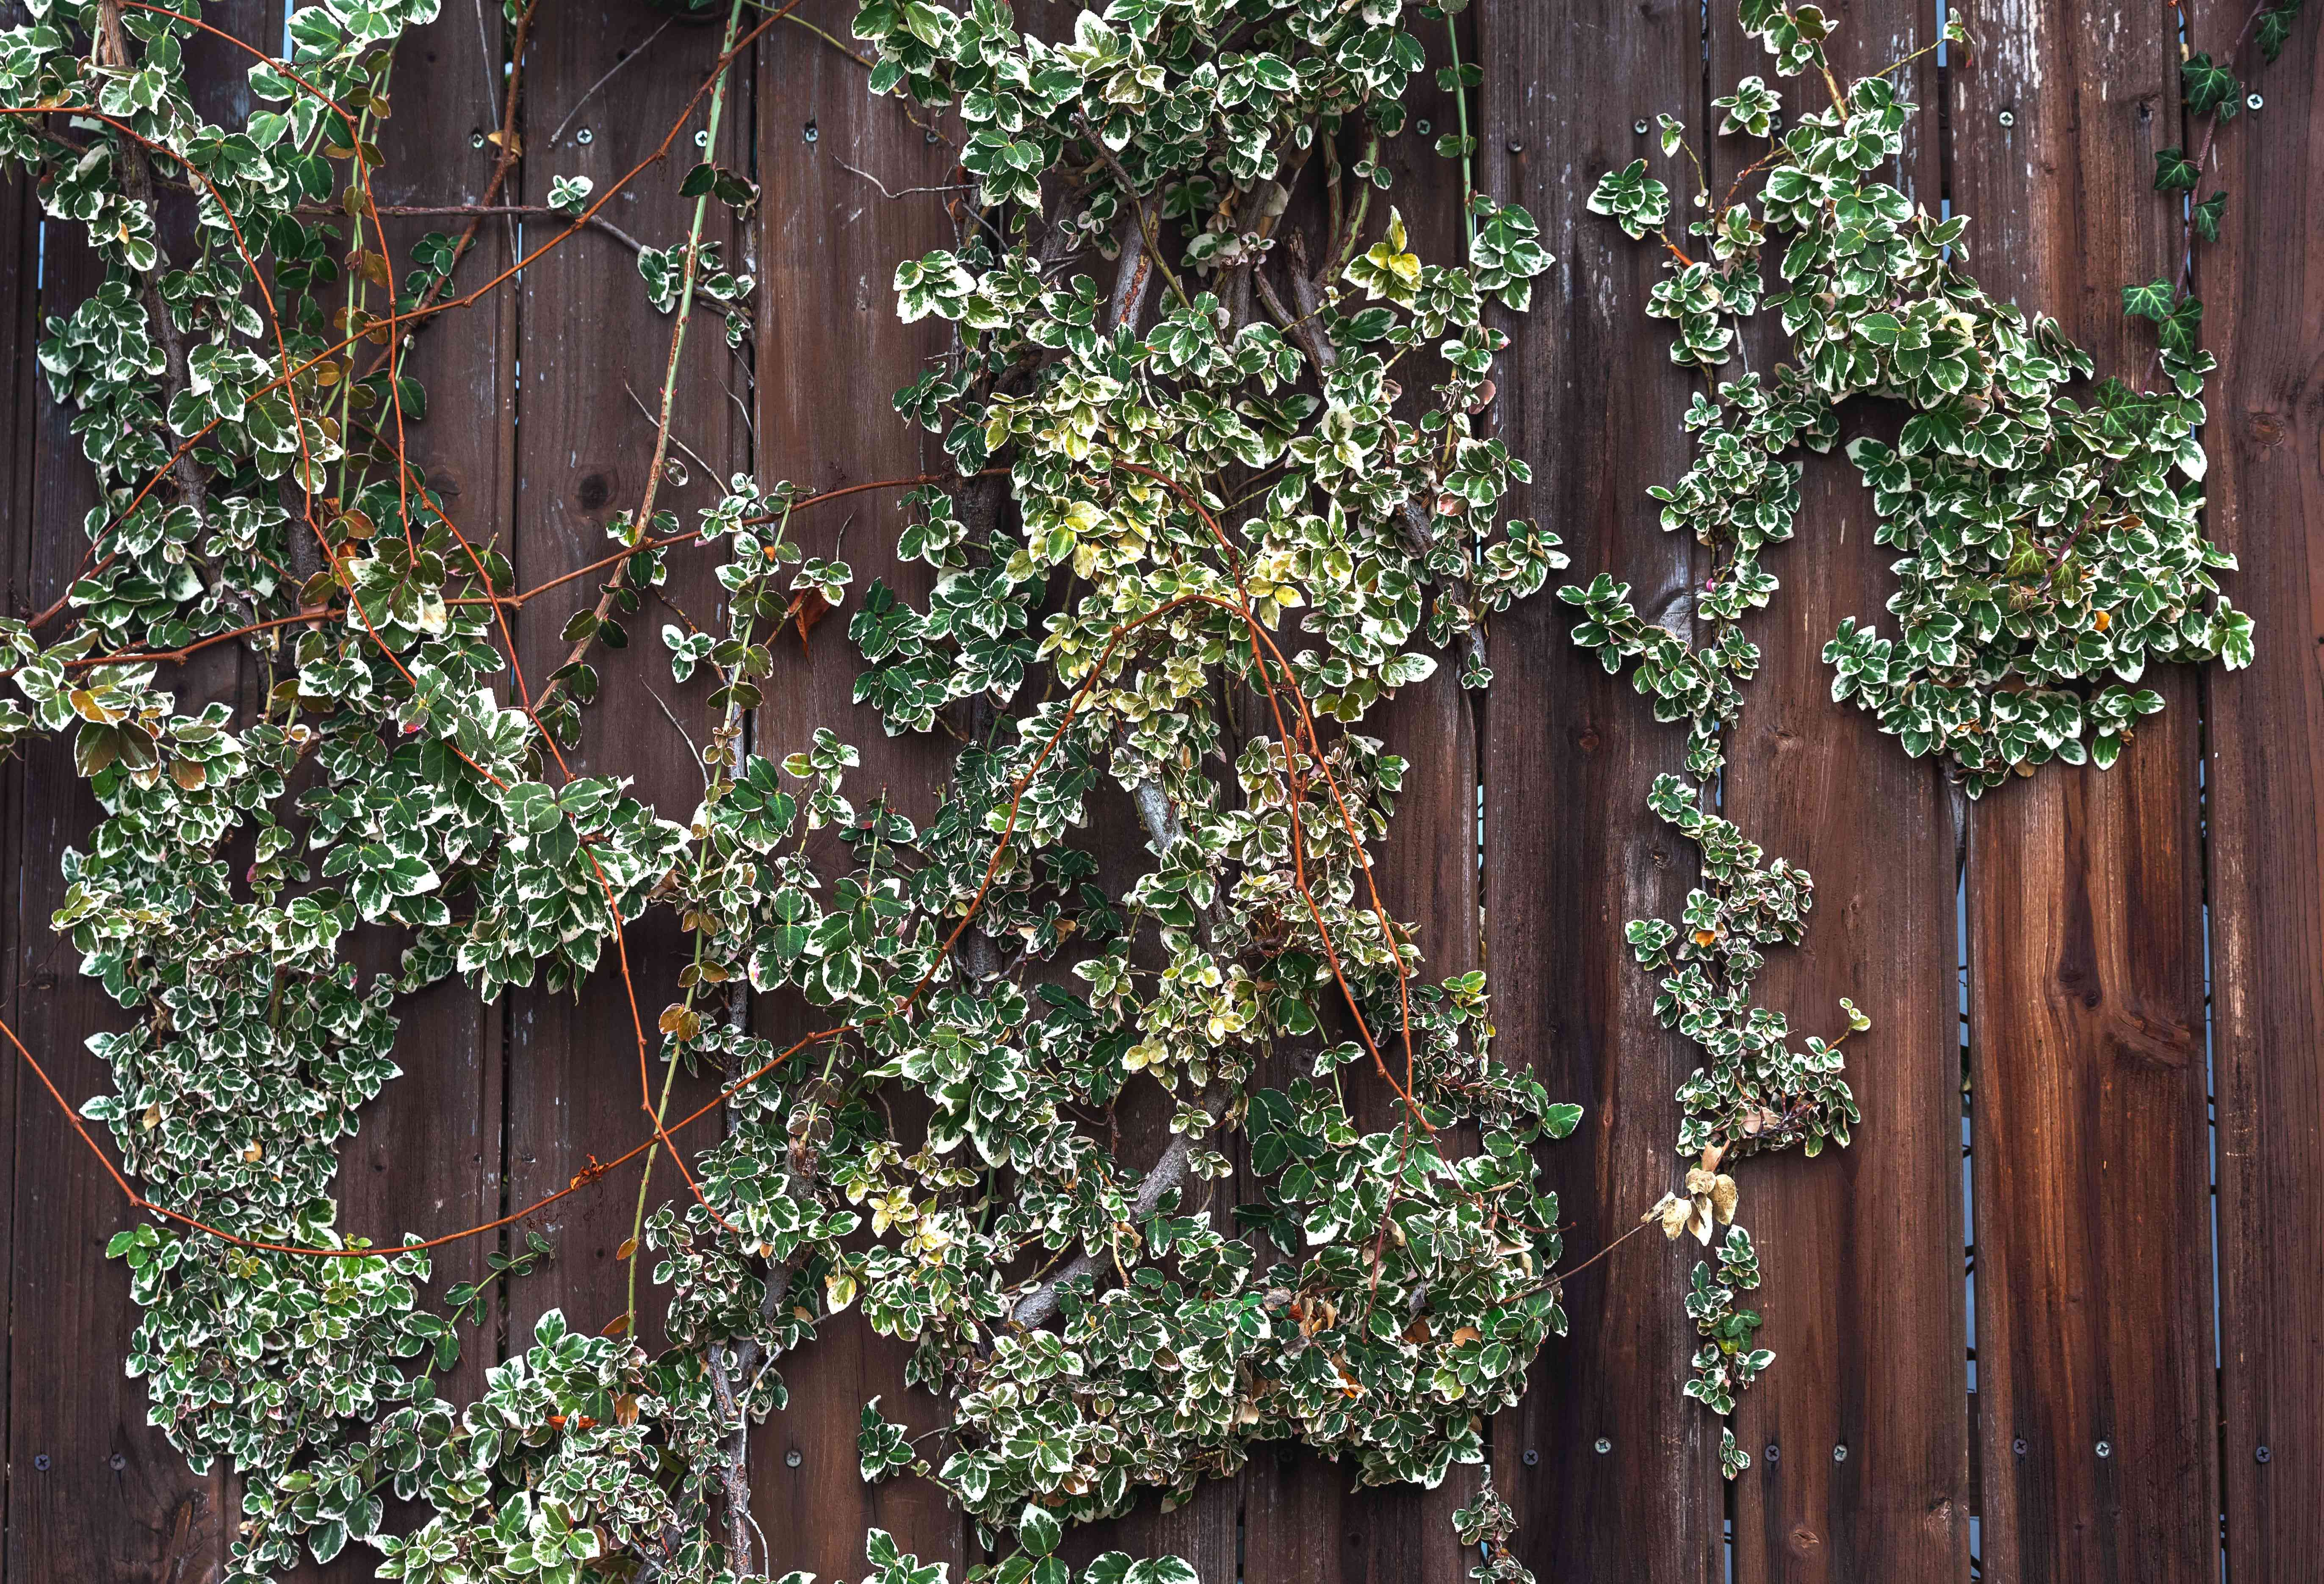 Emerald gaiety euonymus vines climbing dark wood fence with small green and white leaves